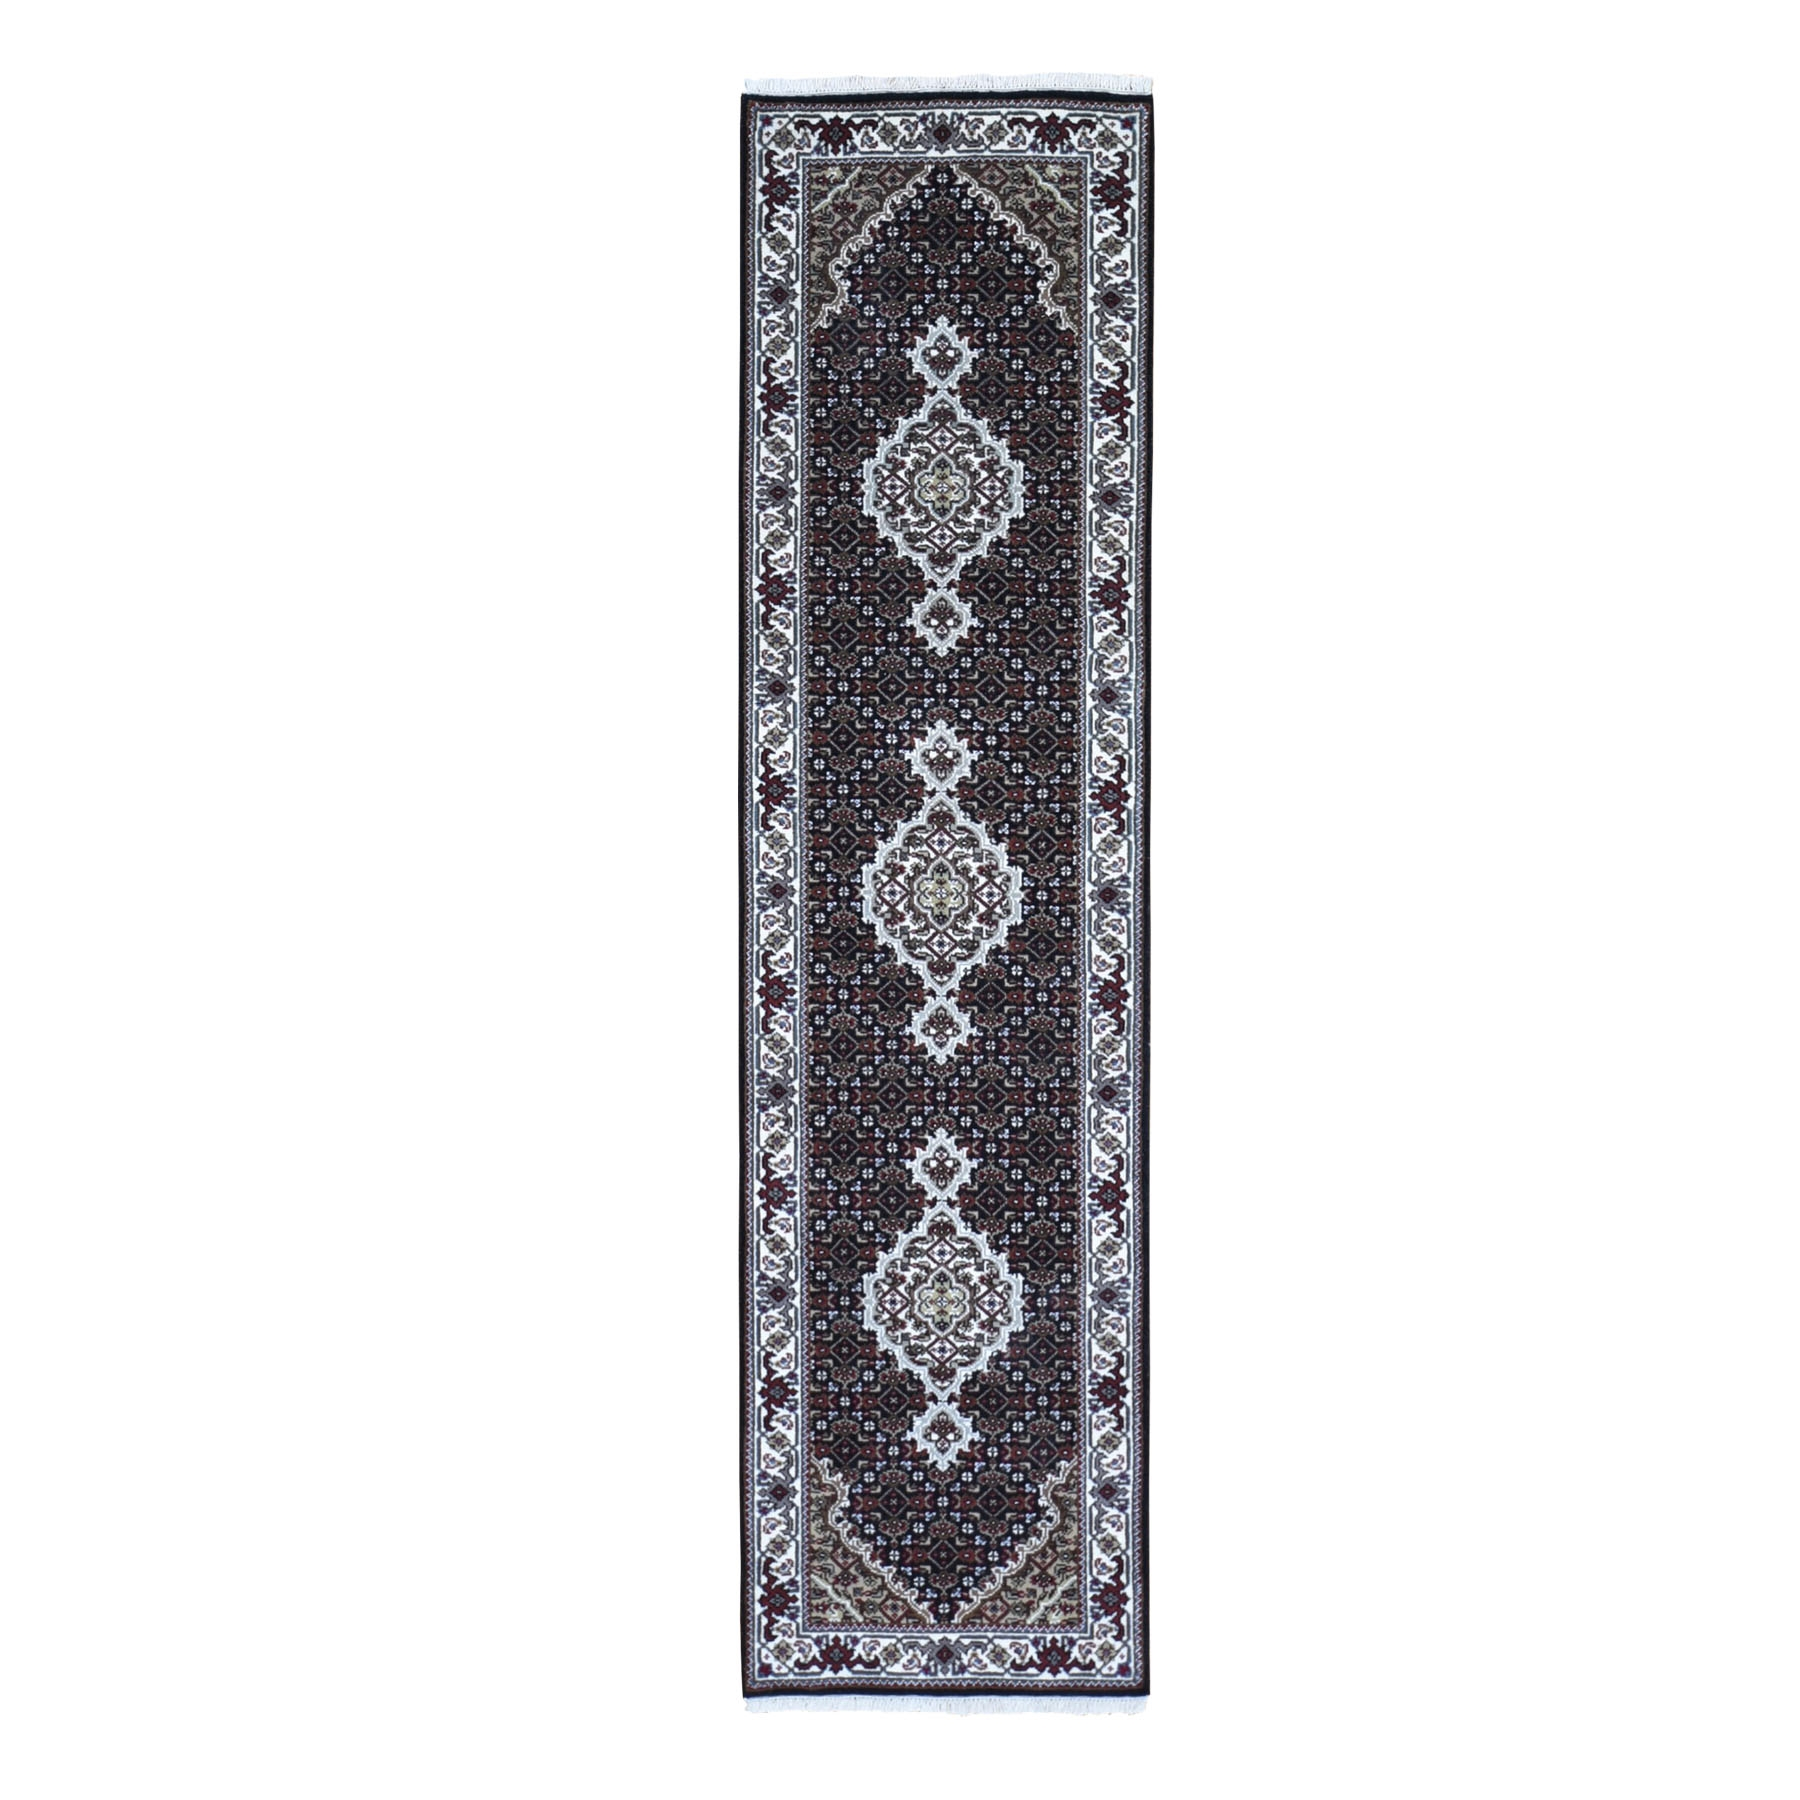 Pirniakan Collection Hand Knotted Black Rug No: 1119116